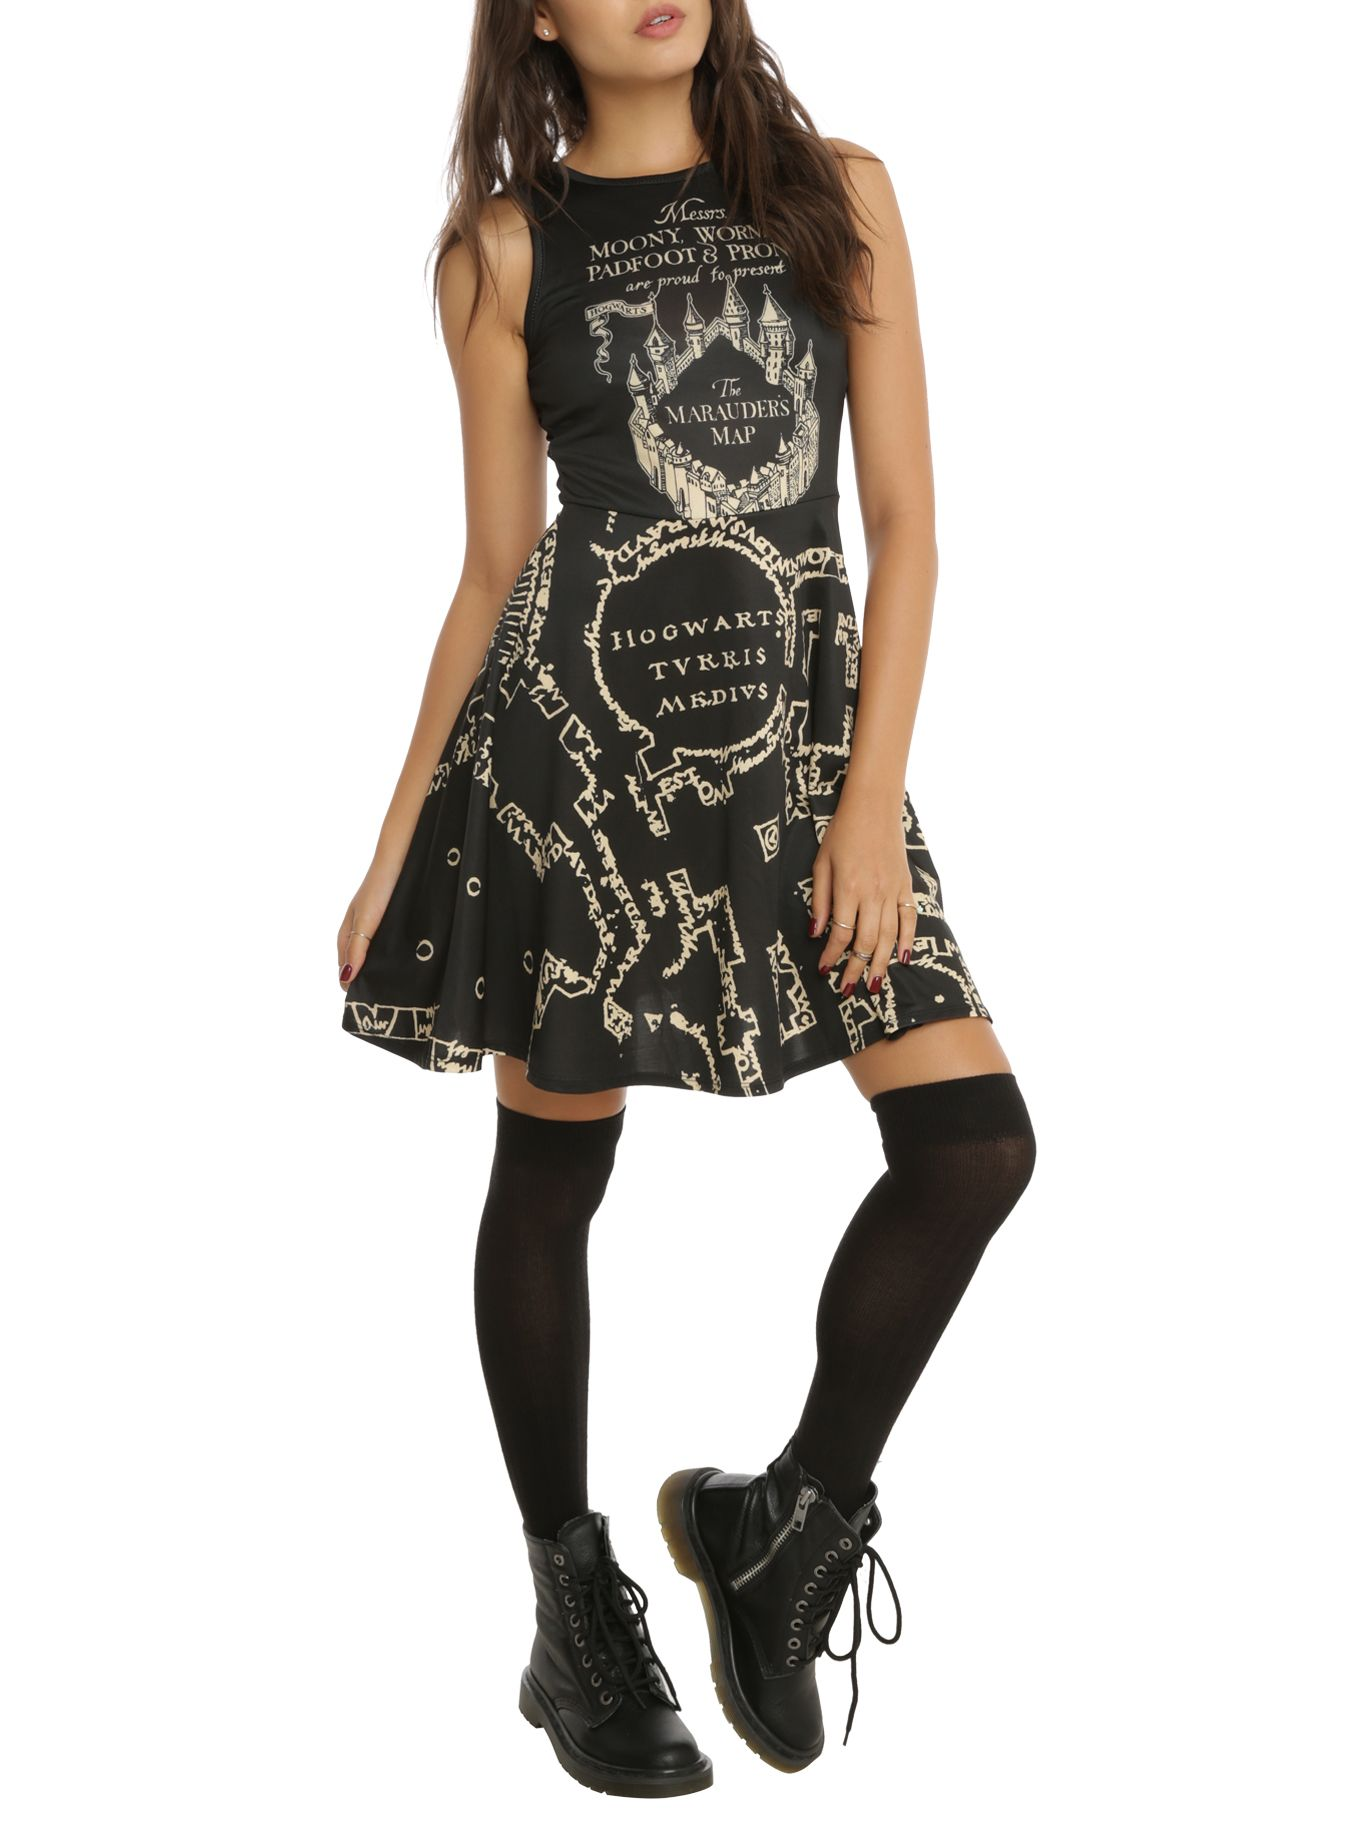 Marauders Map Dress Harry Potter Marauder's Map Dress in 2019 | Once Upon a Time